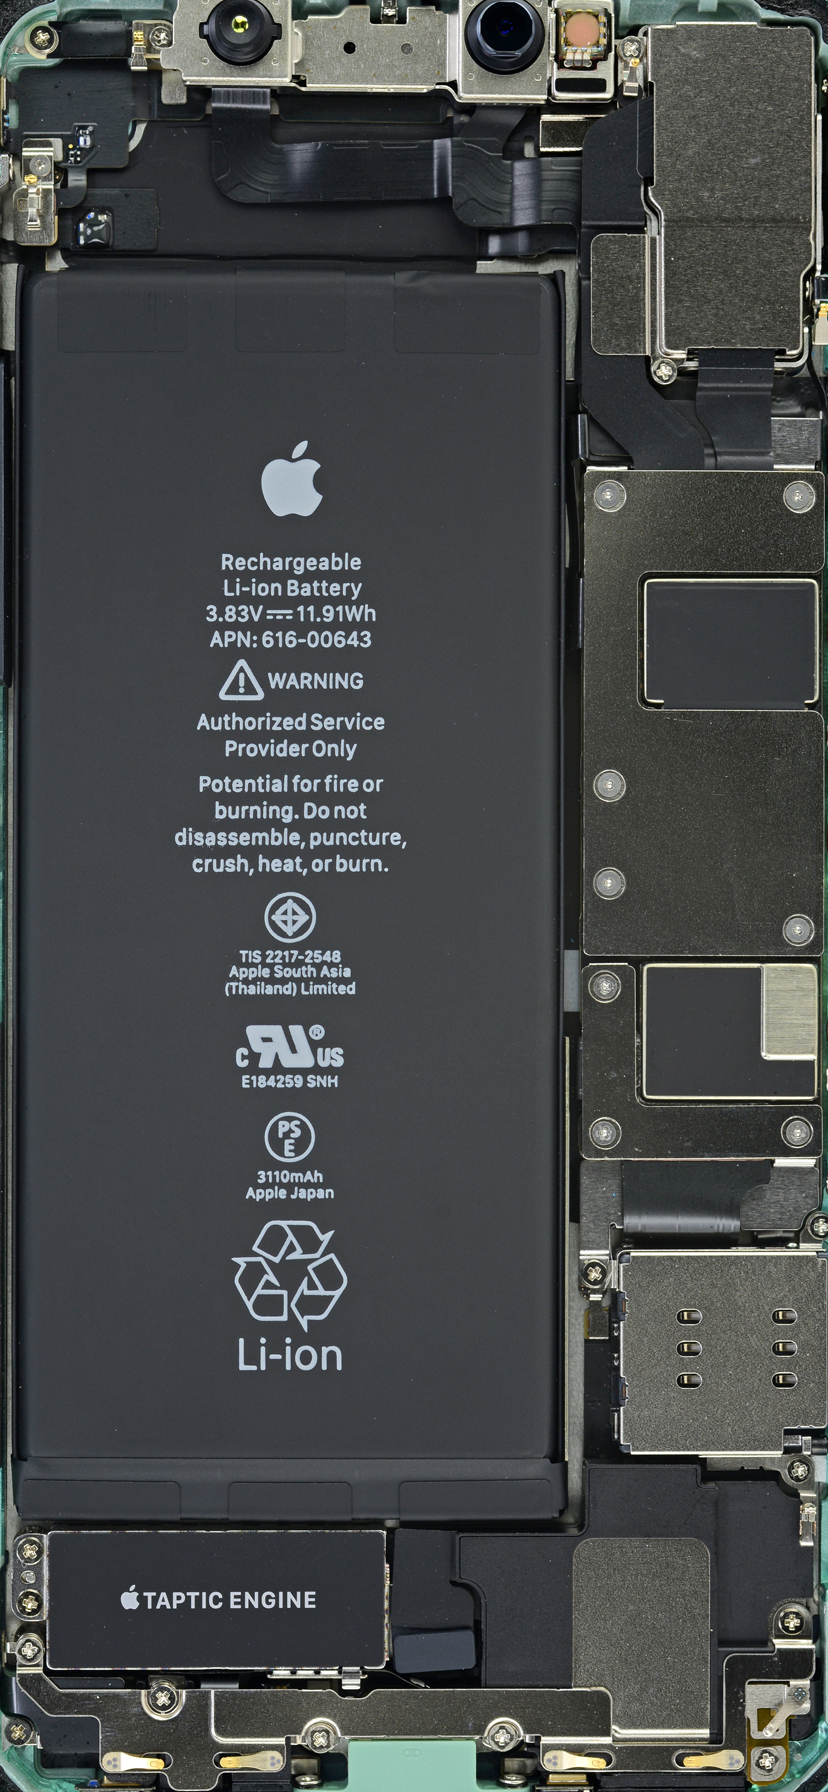 Show Off The Inside Of Your iPhone 21 With This See Through ...